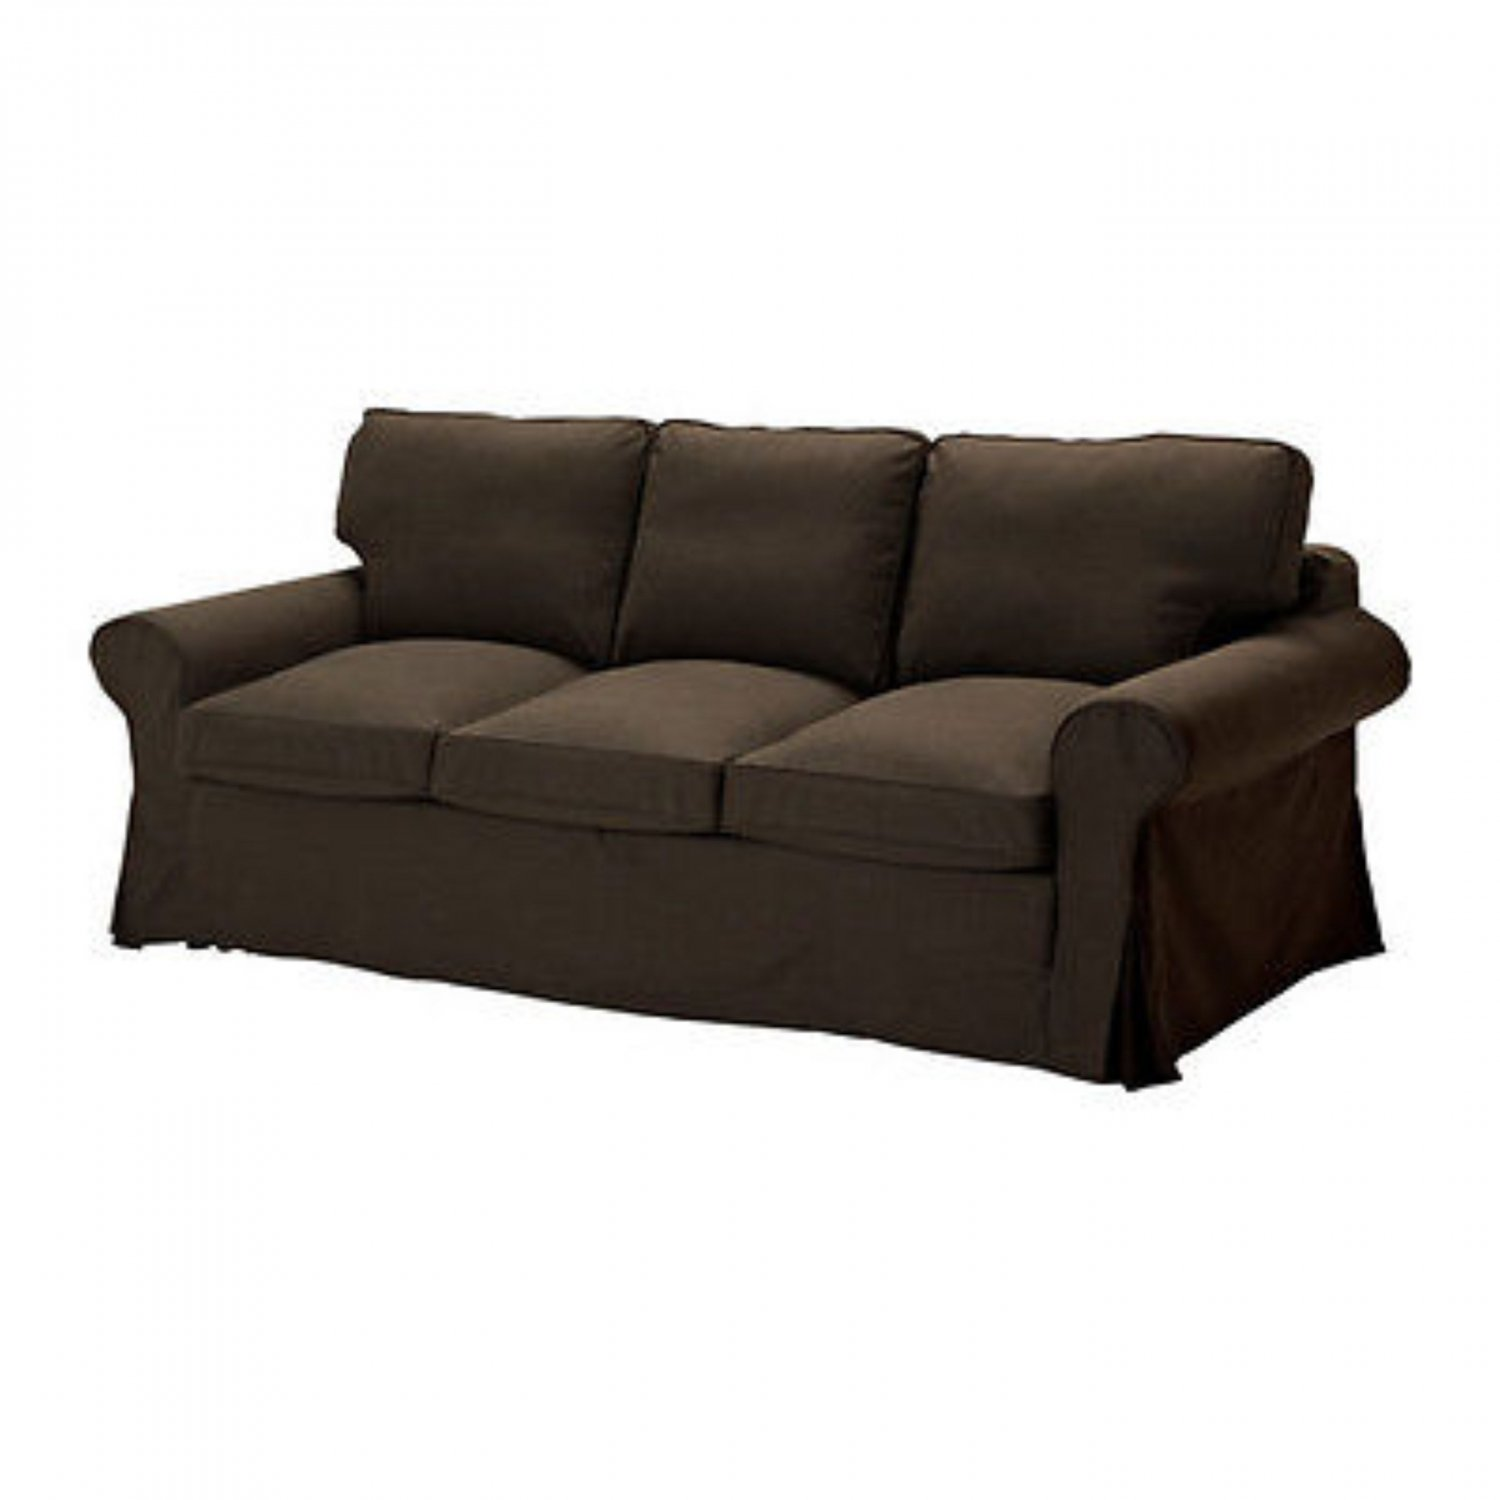 Ikea ektorp pixbo 3 seater sofa bed svanby brown for Ikea sofa slipcovers discontinued